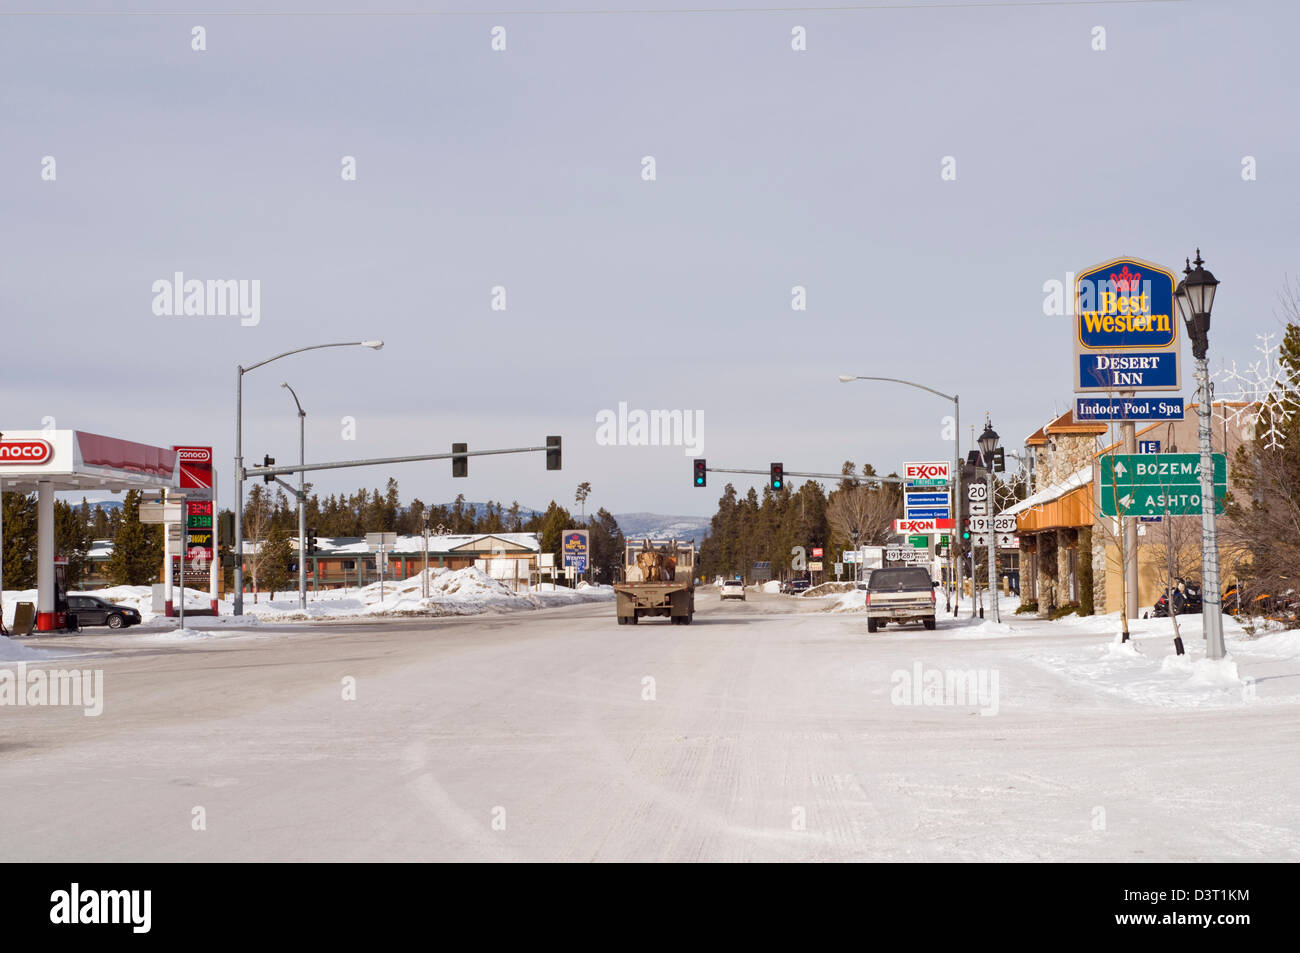 The main road through West Yellowstone in Montana, USA - Stock Image